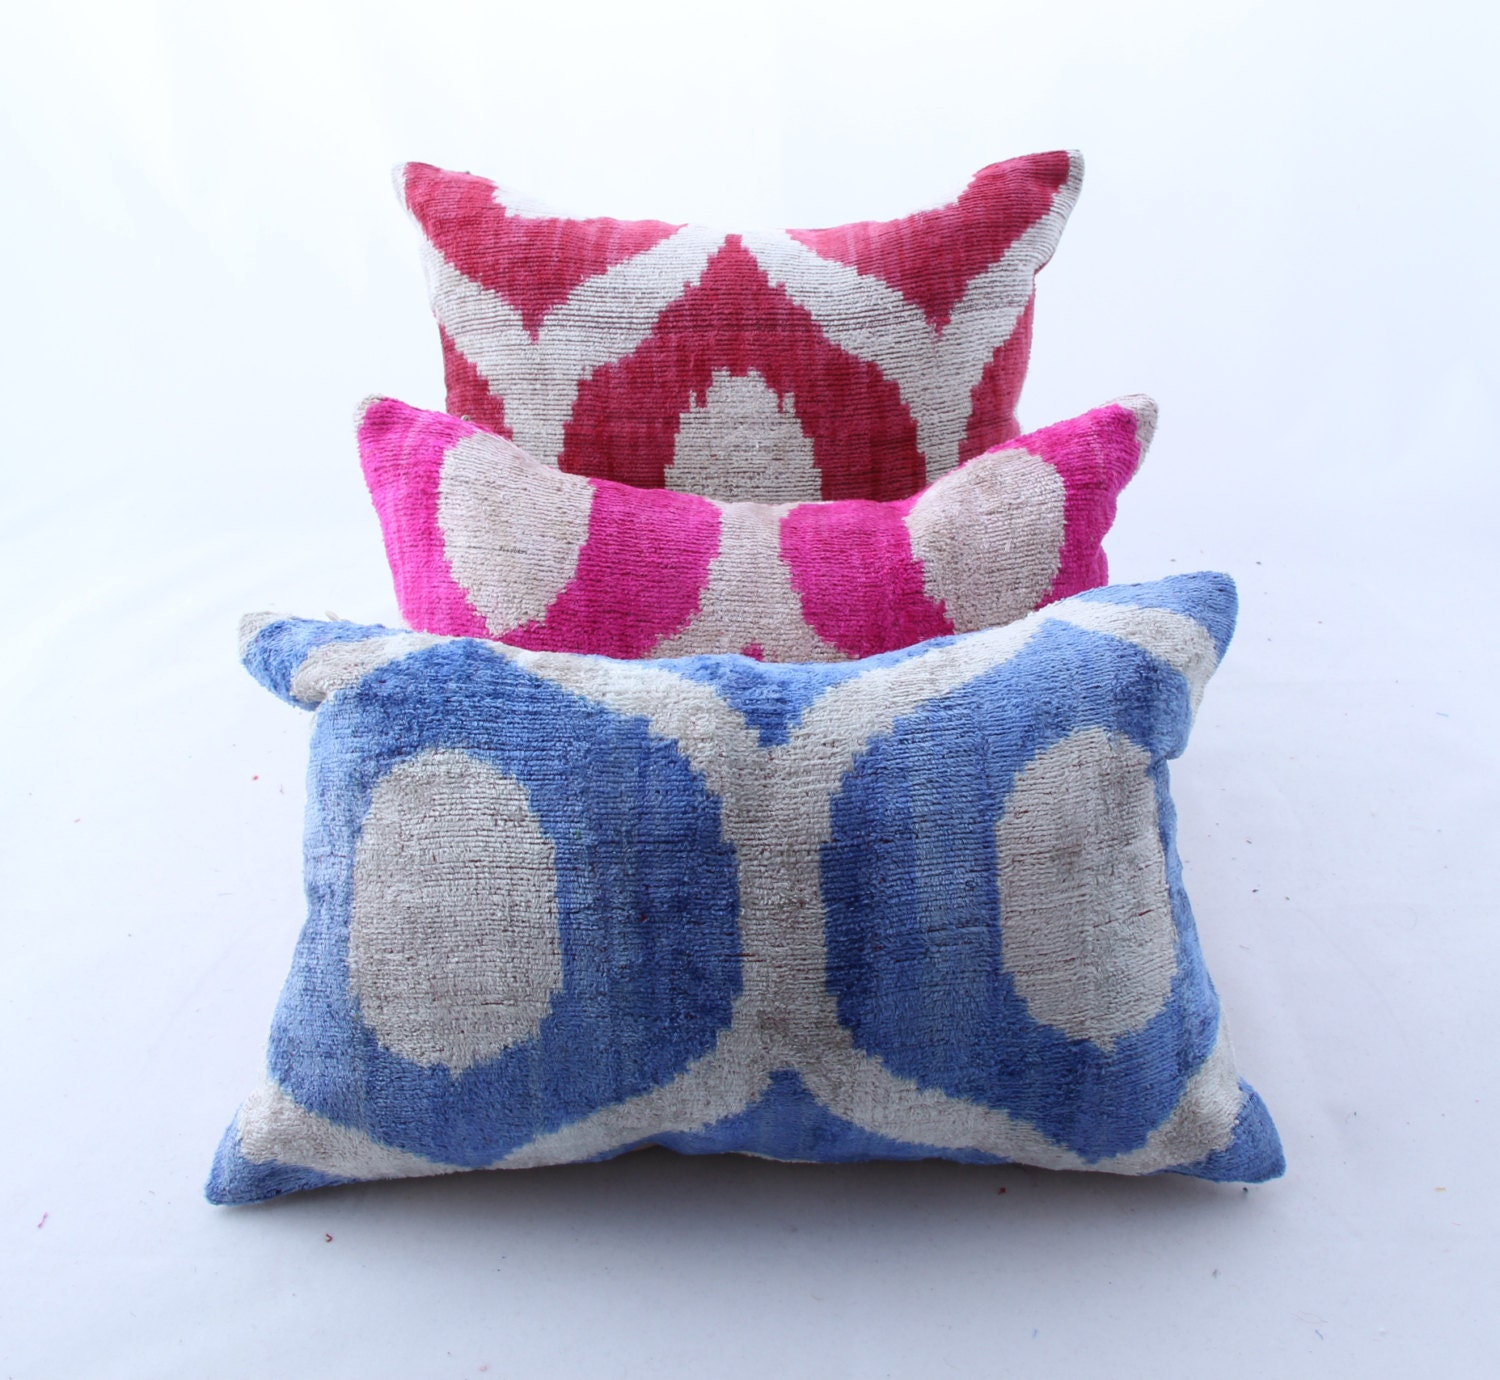 Handmade Ikat Throw Pillows : Berzey /Handmade Velvet ikat Pillows 3 pcs Awesome